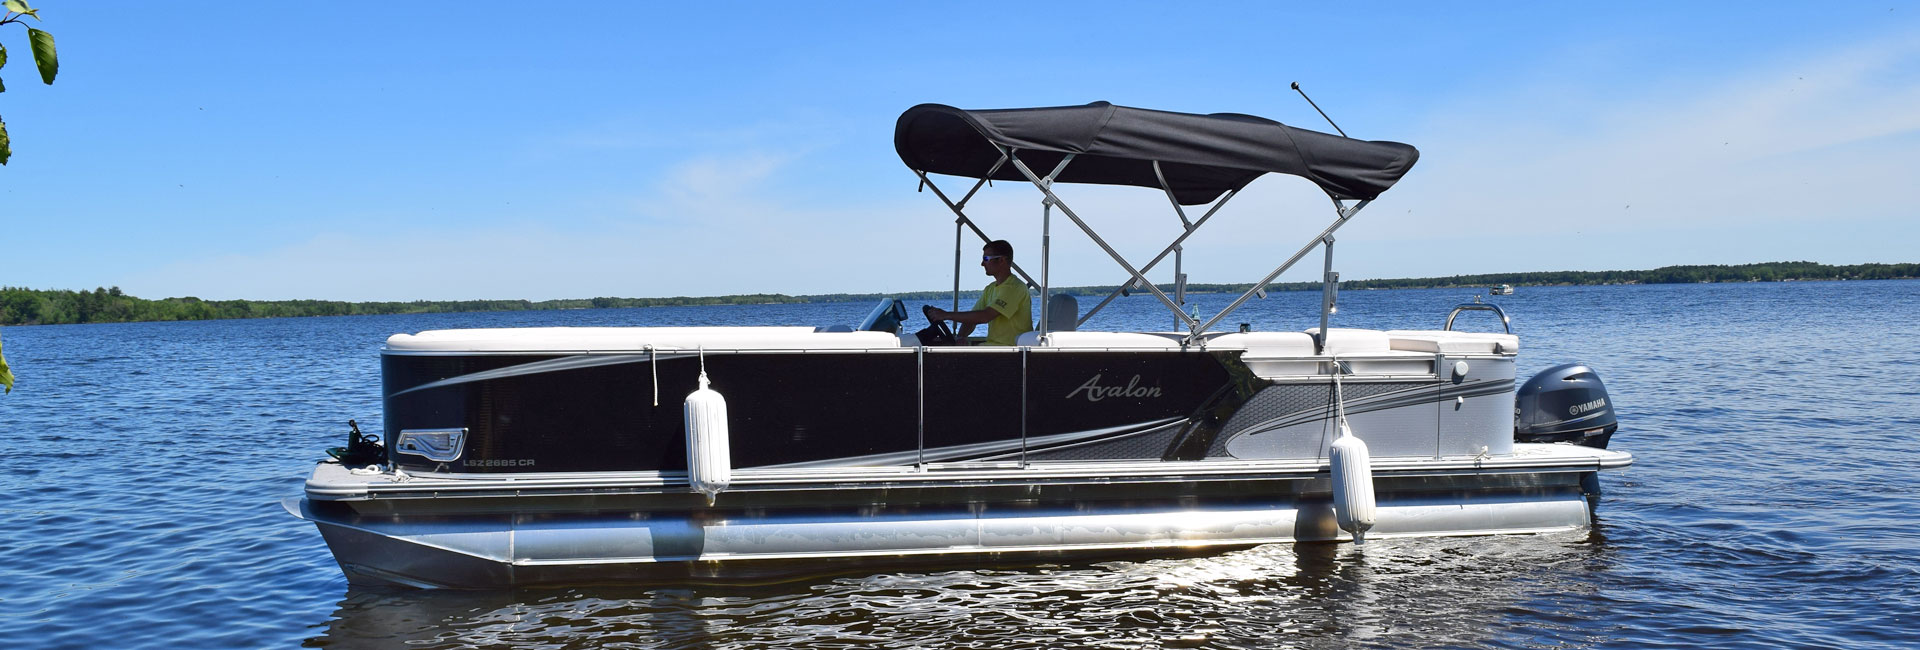 Avalon Pontoon Rentals on Castle Rock Lake